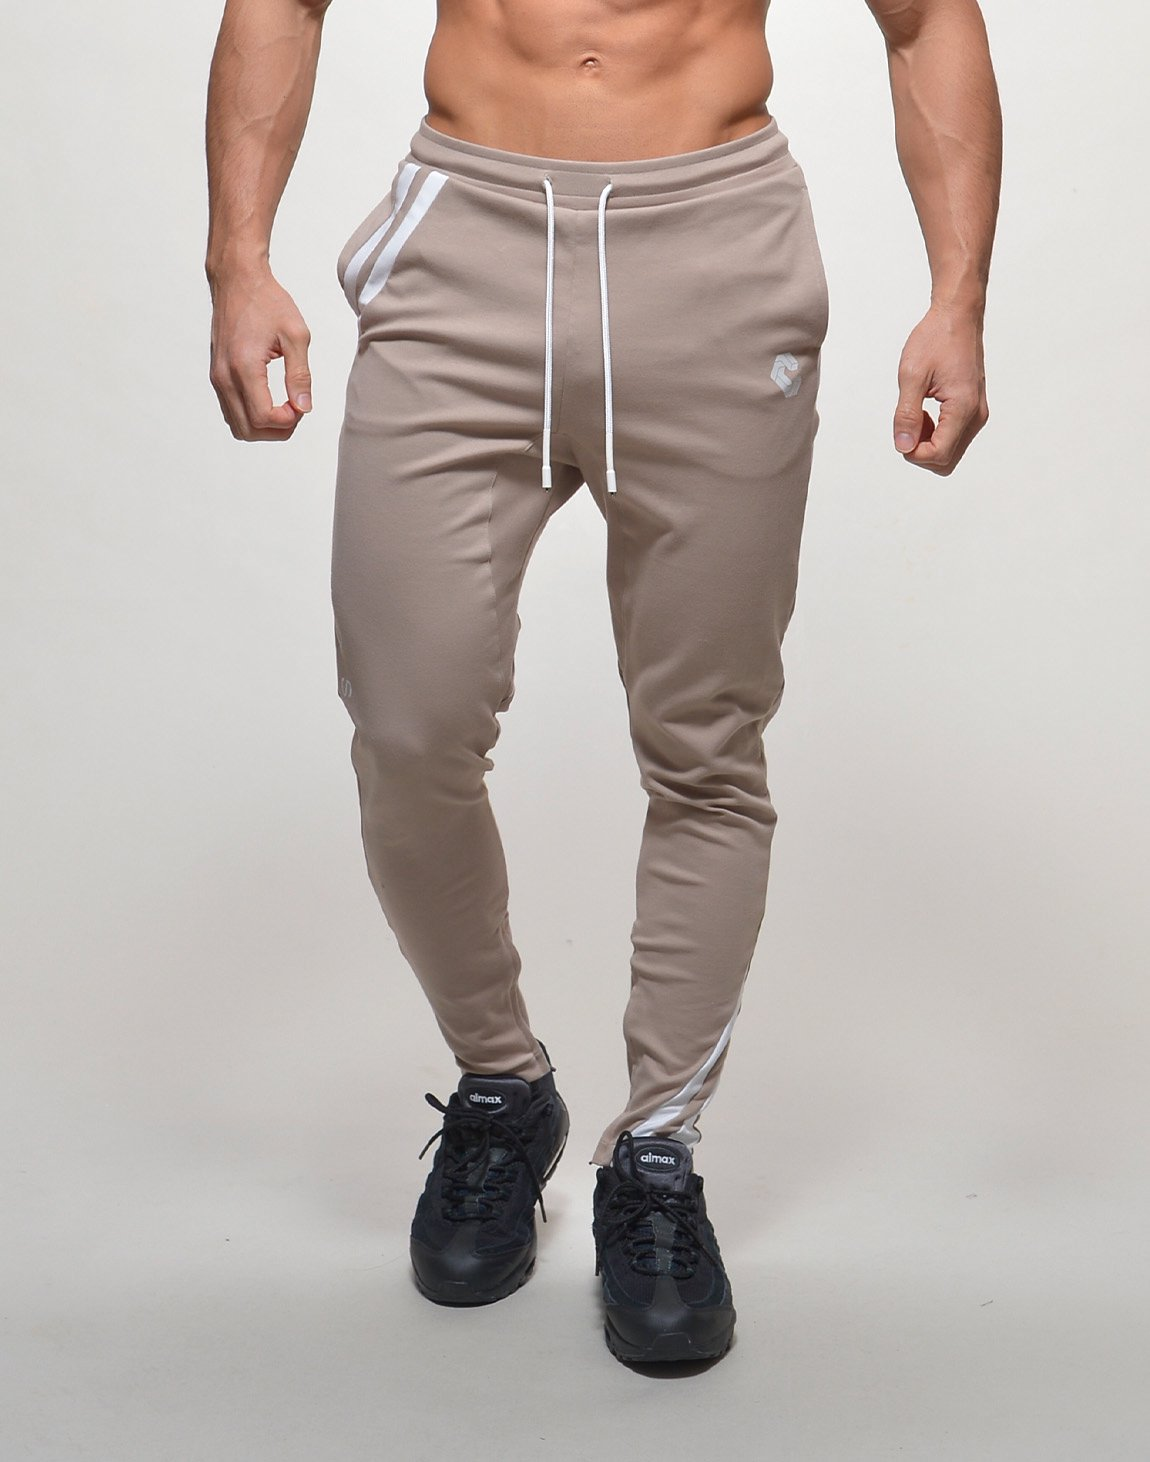 <img class='new_mark_img1' src='https://img.shop-pro.jp/img/new/icons1.gif' style='border:none;display:inline;margin:0px;padding:0px;width:auto;' />CRONOS DIAGONAL LINE PANTS【BEIGE】